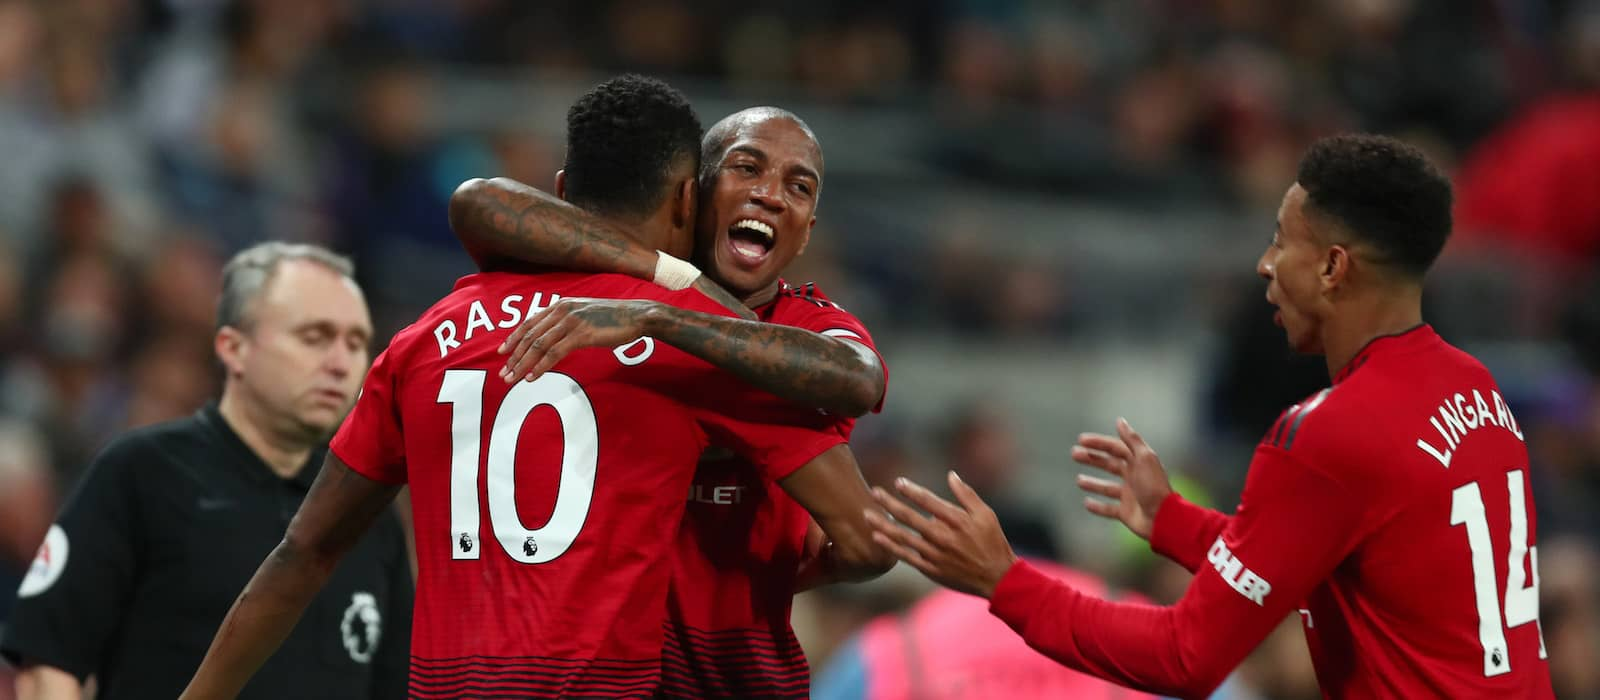 Player ratings: Tottenham Hotspur 0-1 Manchester United